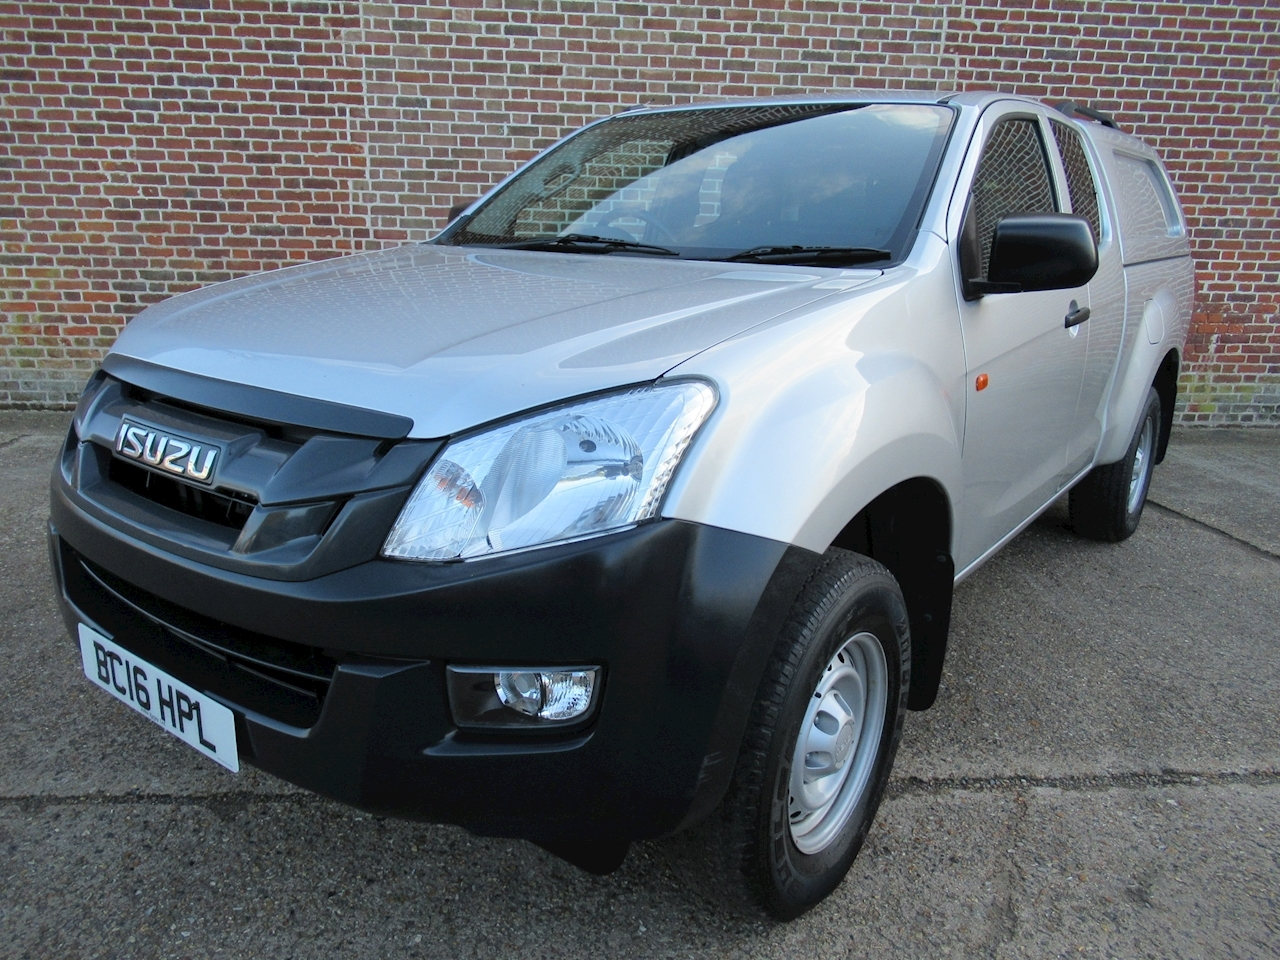 Isuzu D-Max Td Ecb 2.5 2dr Pick-Up Manual Diesel